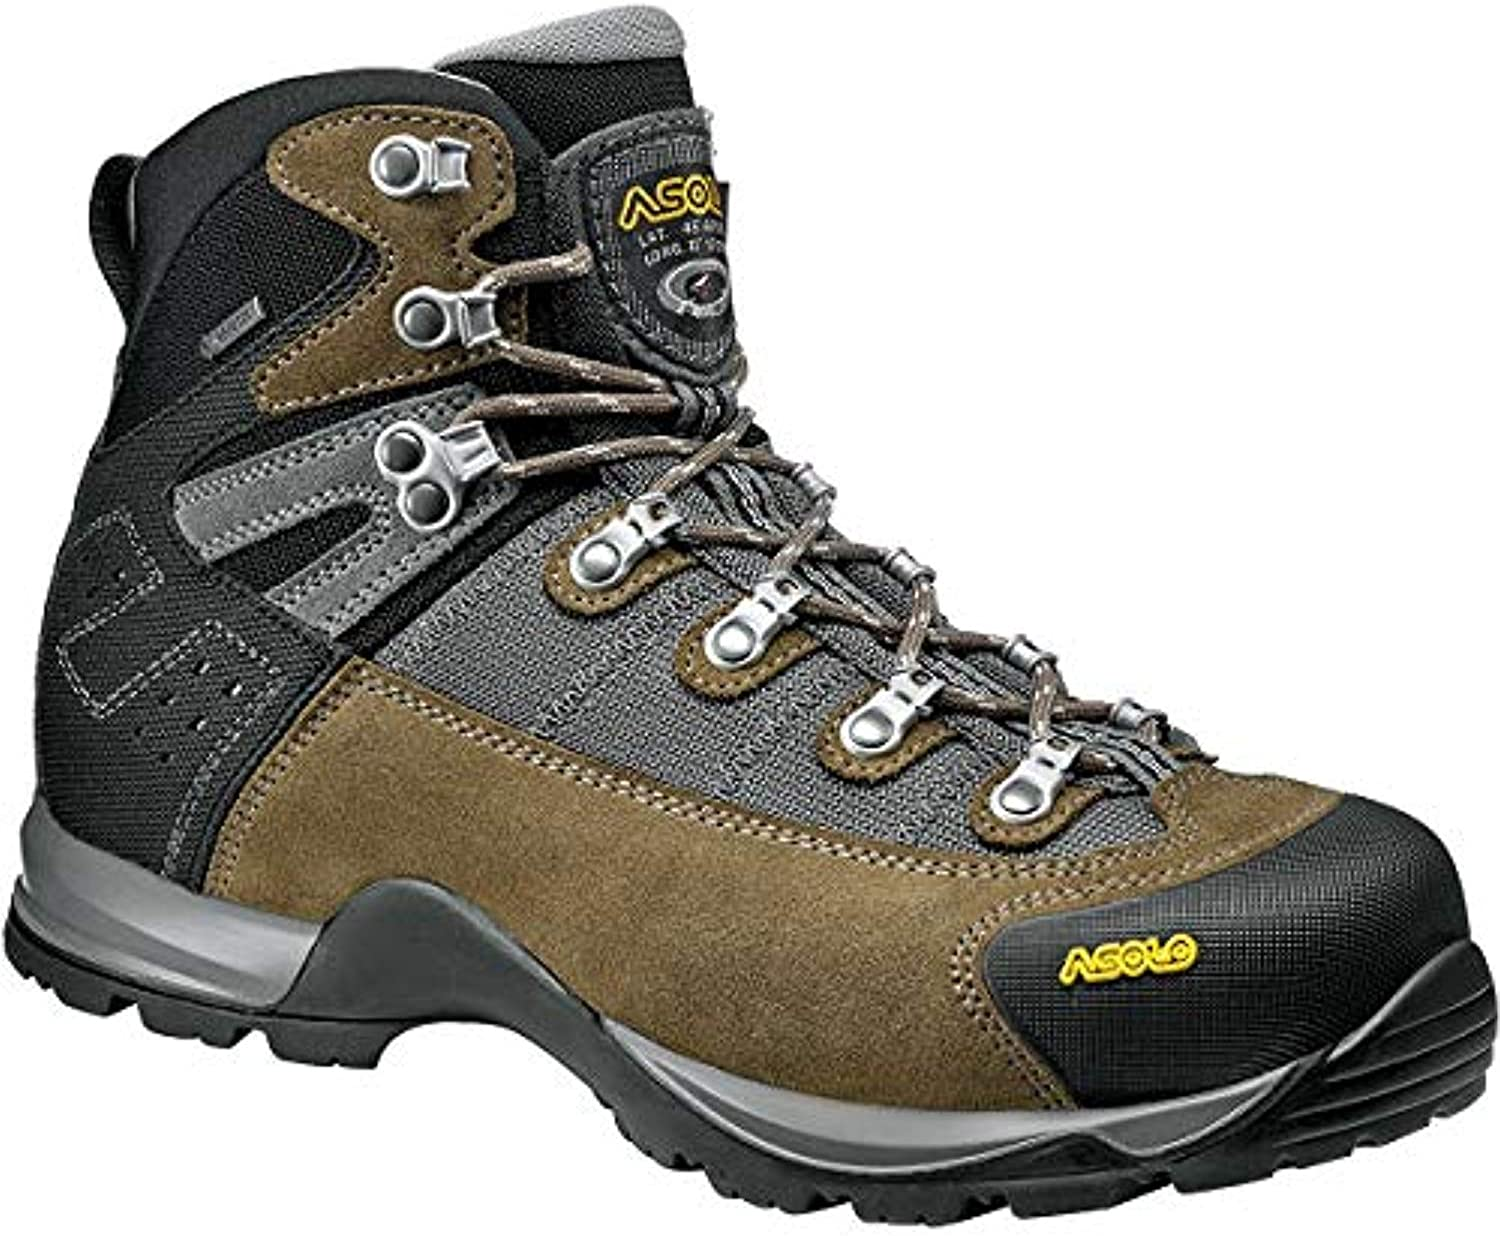 Asolo Men s Fugitive GTX Hiking Boot Knit Cap Bundle